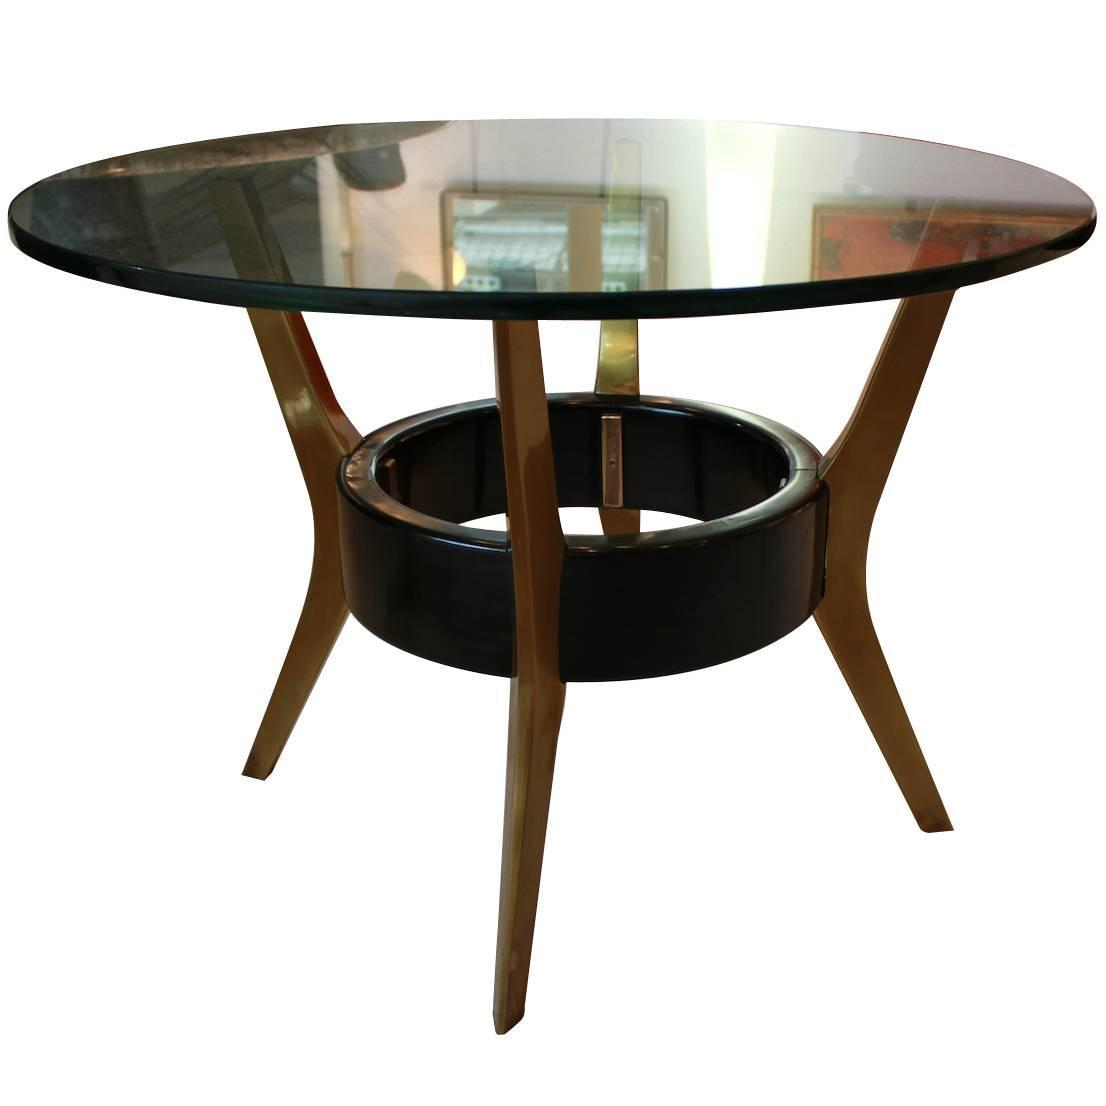 Fontana Arte Bronze And Glass Coffee Table From 1950s At 1stdibs